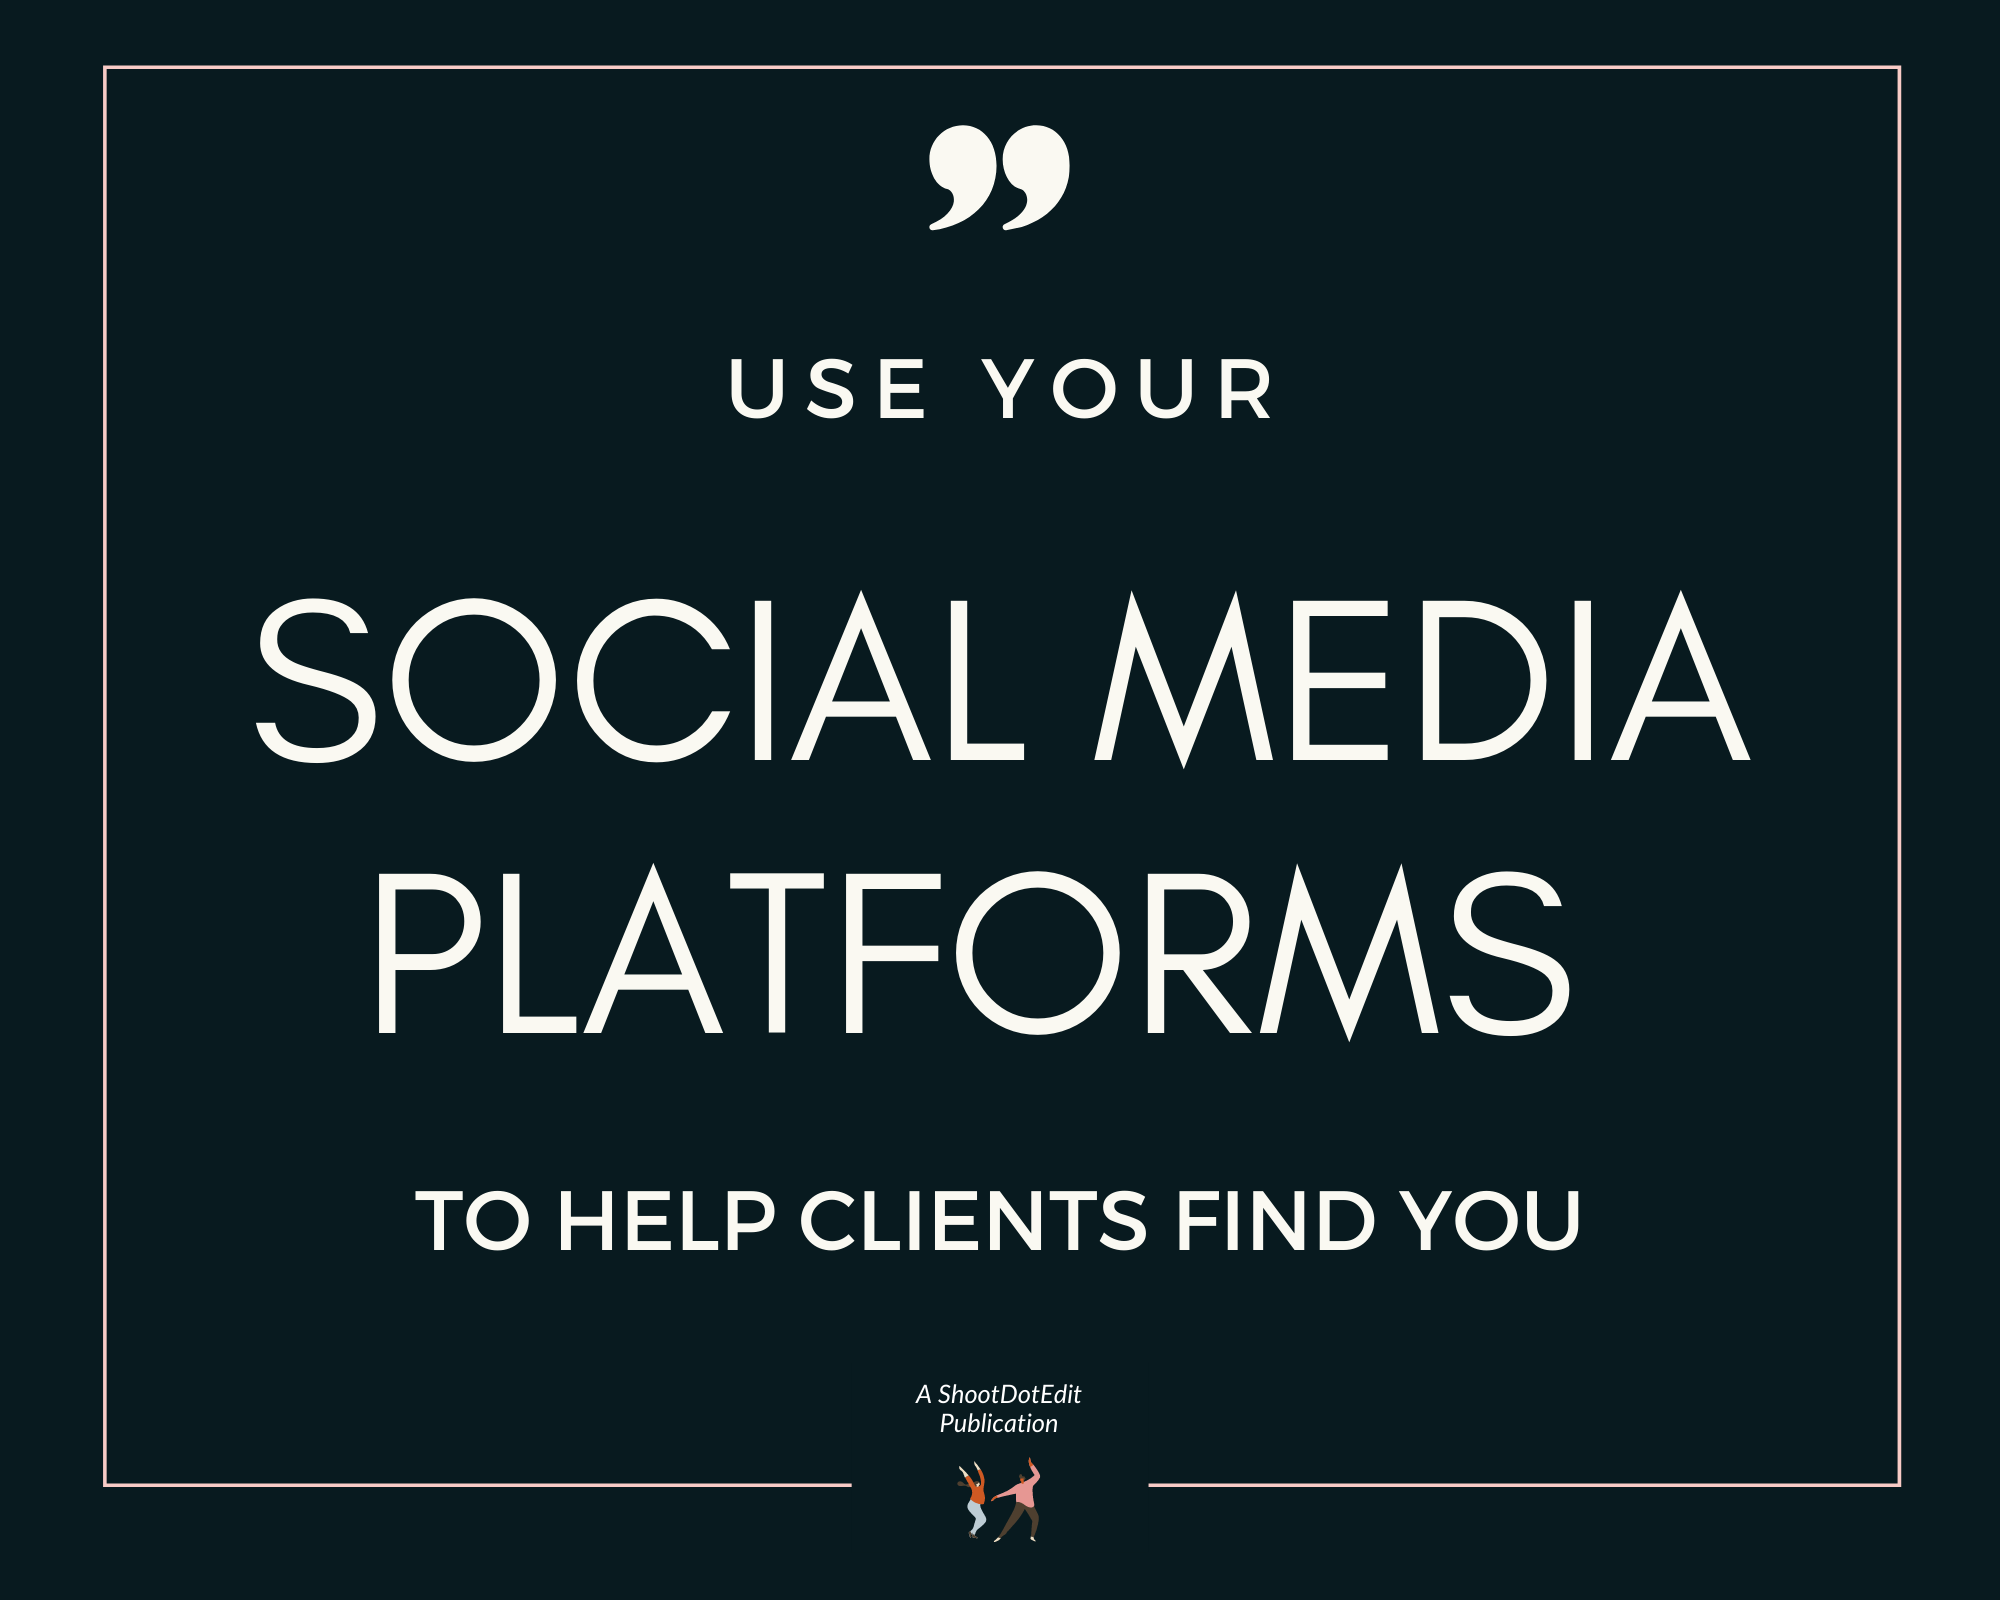 Infographic stating use your social media platforms to help clients find you